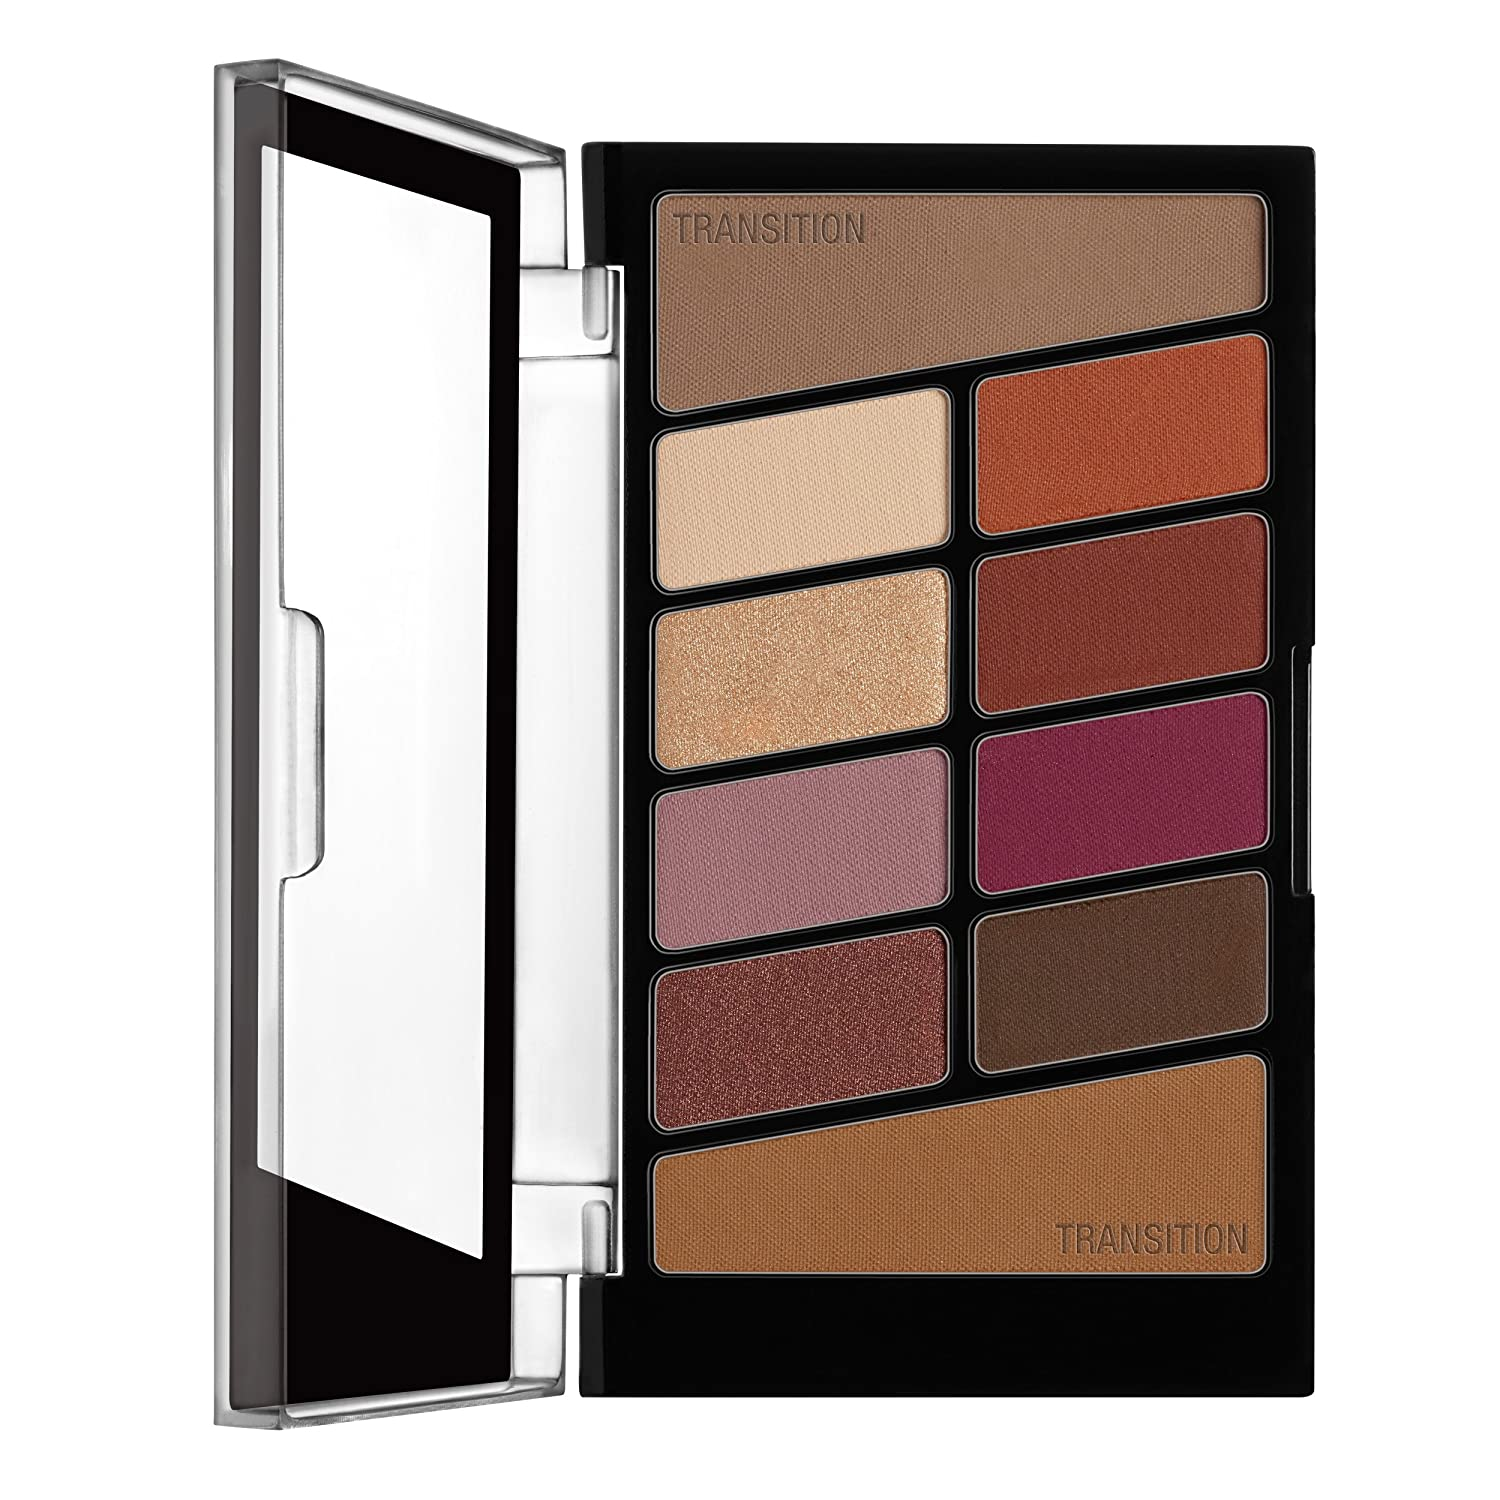 wet n wild Color Icon Eyeshadow 10 Pan Palette, Rose in the Air, 0.3 Ounce Markwins Beauty Products 758